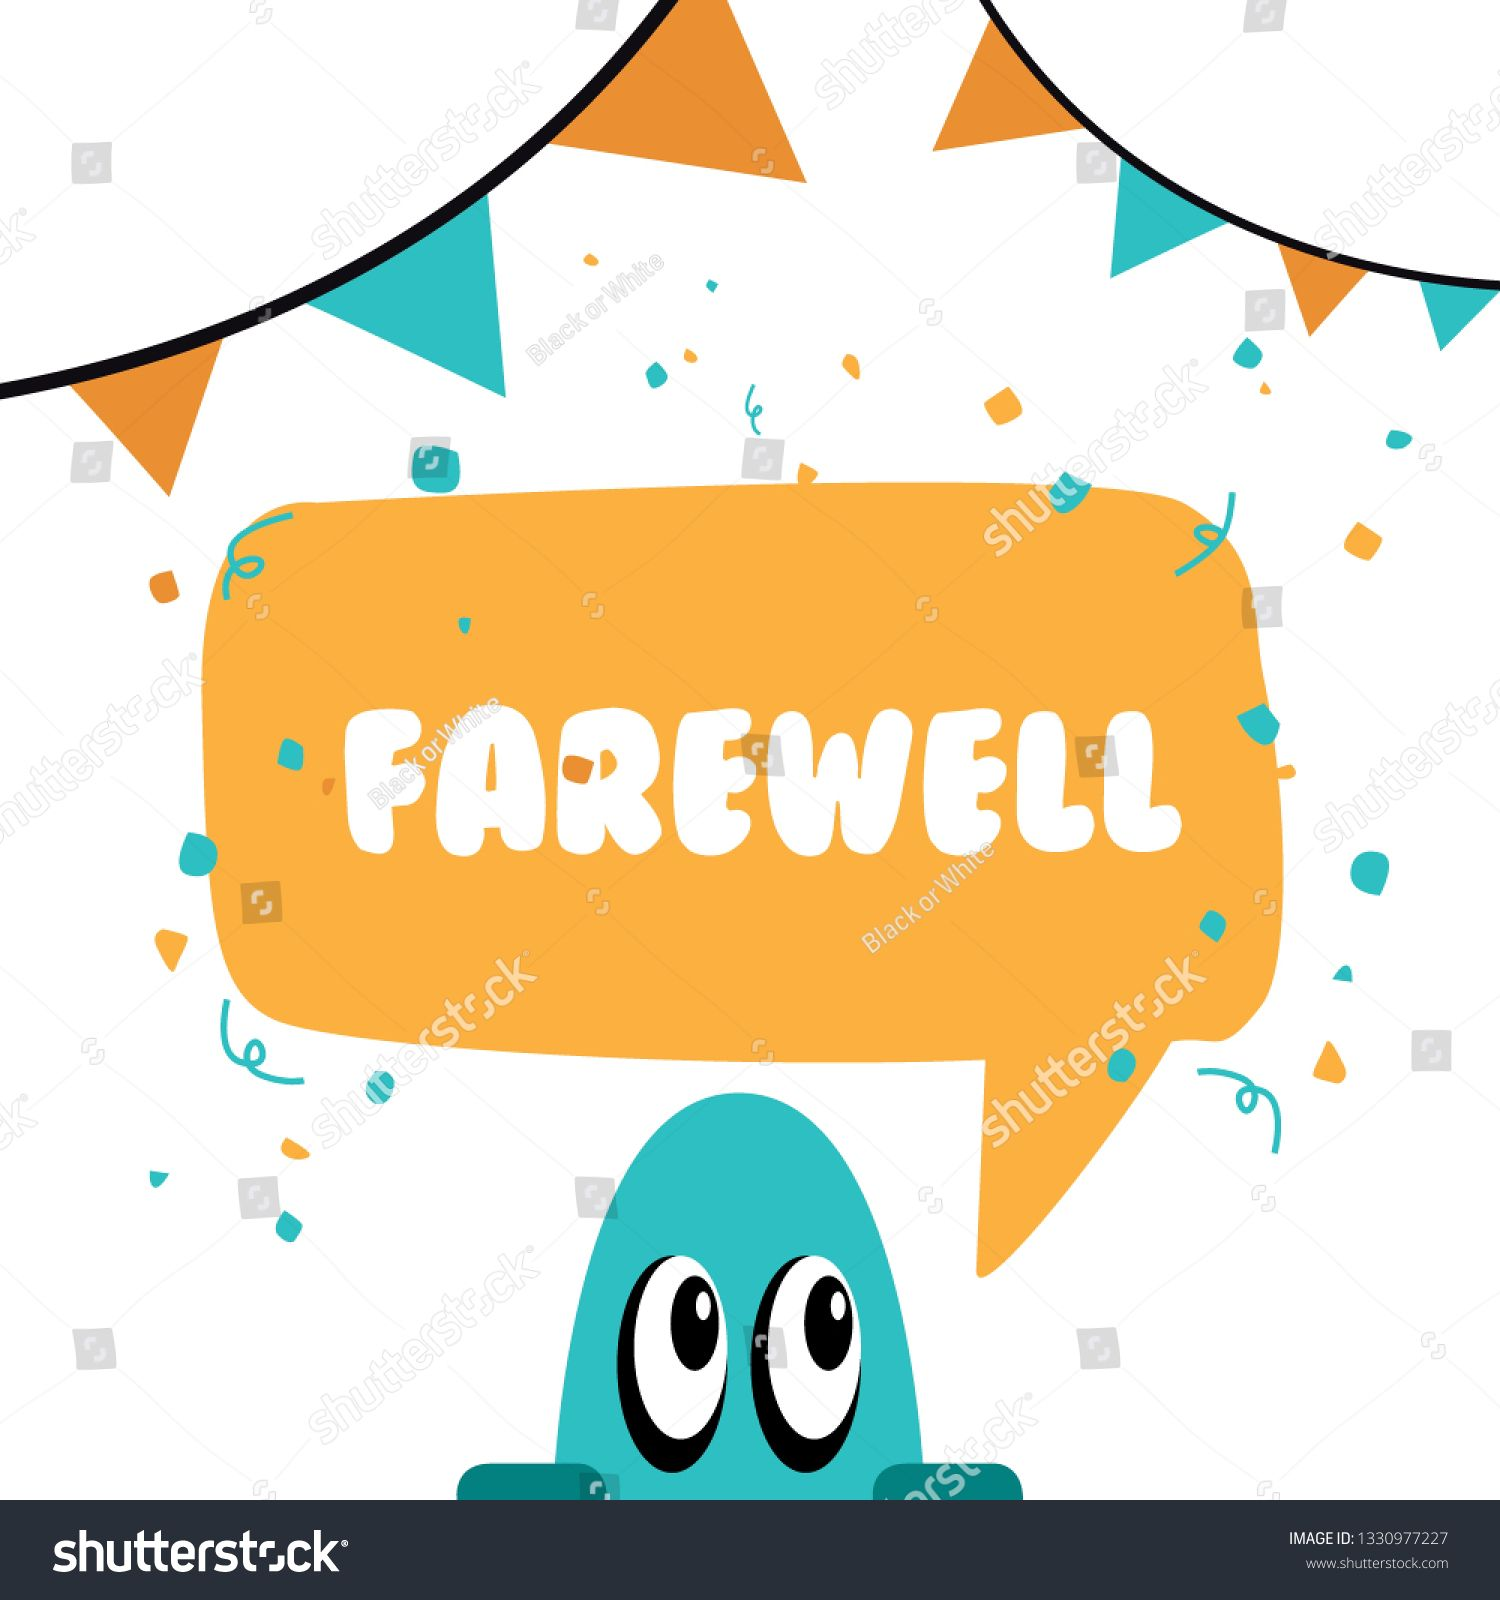 Farewell Party Illustration Background And Poster Card Design Ad Sponsored Illustration Party Farewell Background Card Design Cards Illustration